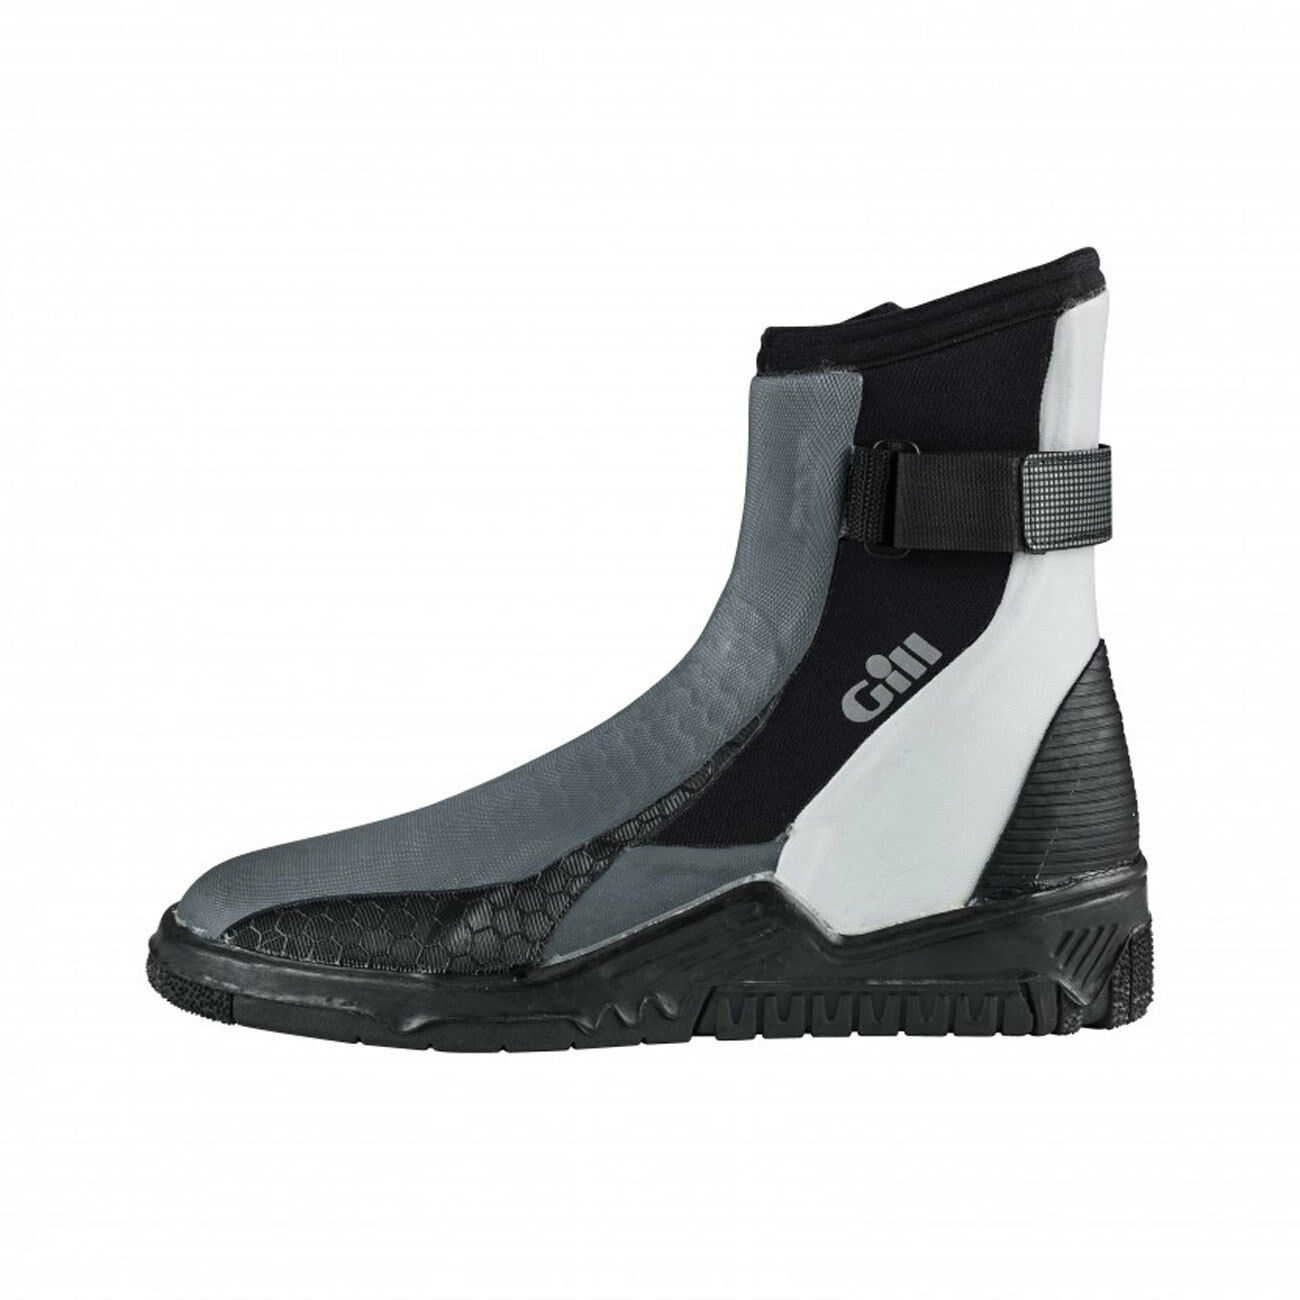 Gill Neoprene Sailing Boots Neoprene Boots for Sailing+Surfing for Men and Women